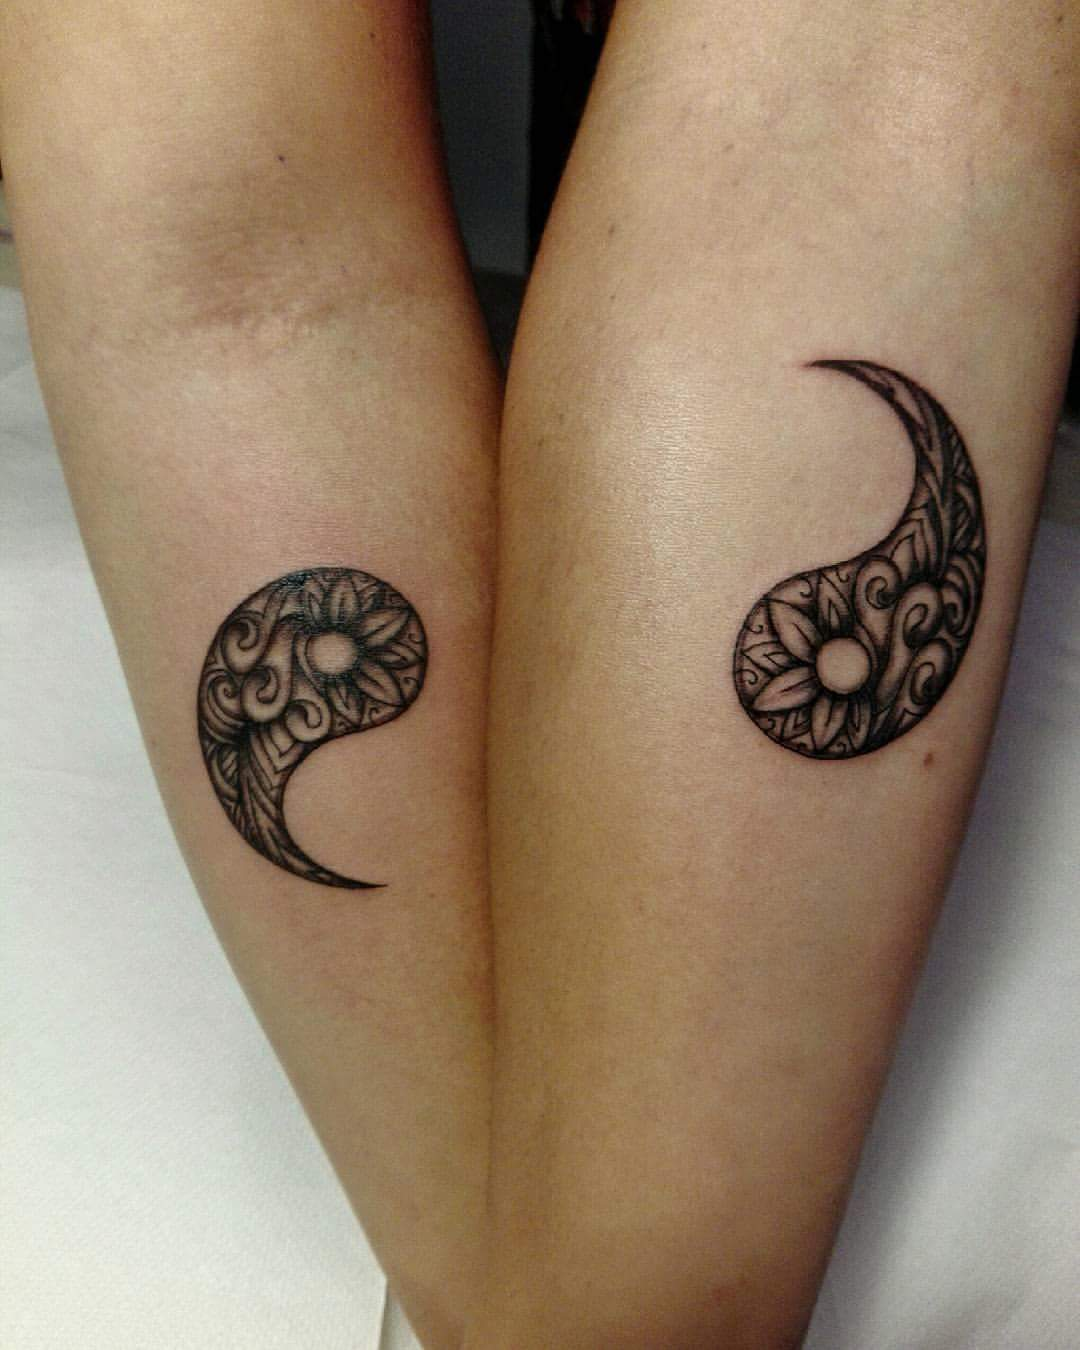 6216497771ba1 The Yin Yang tattoo will show how you complement each other. Yin stands for  the moon, and its calmness and energy. Yan stands for sun and its life and  power ...